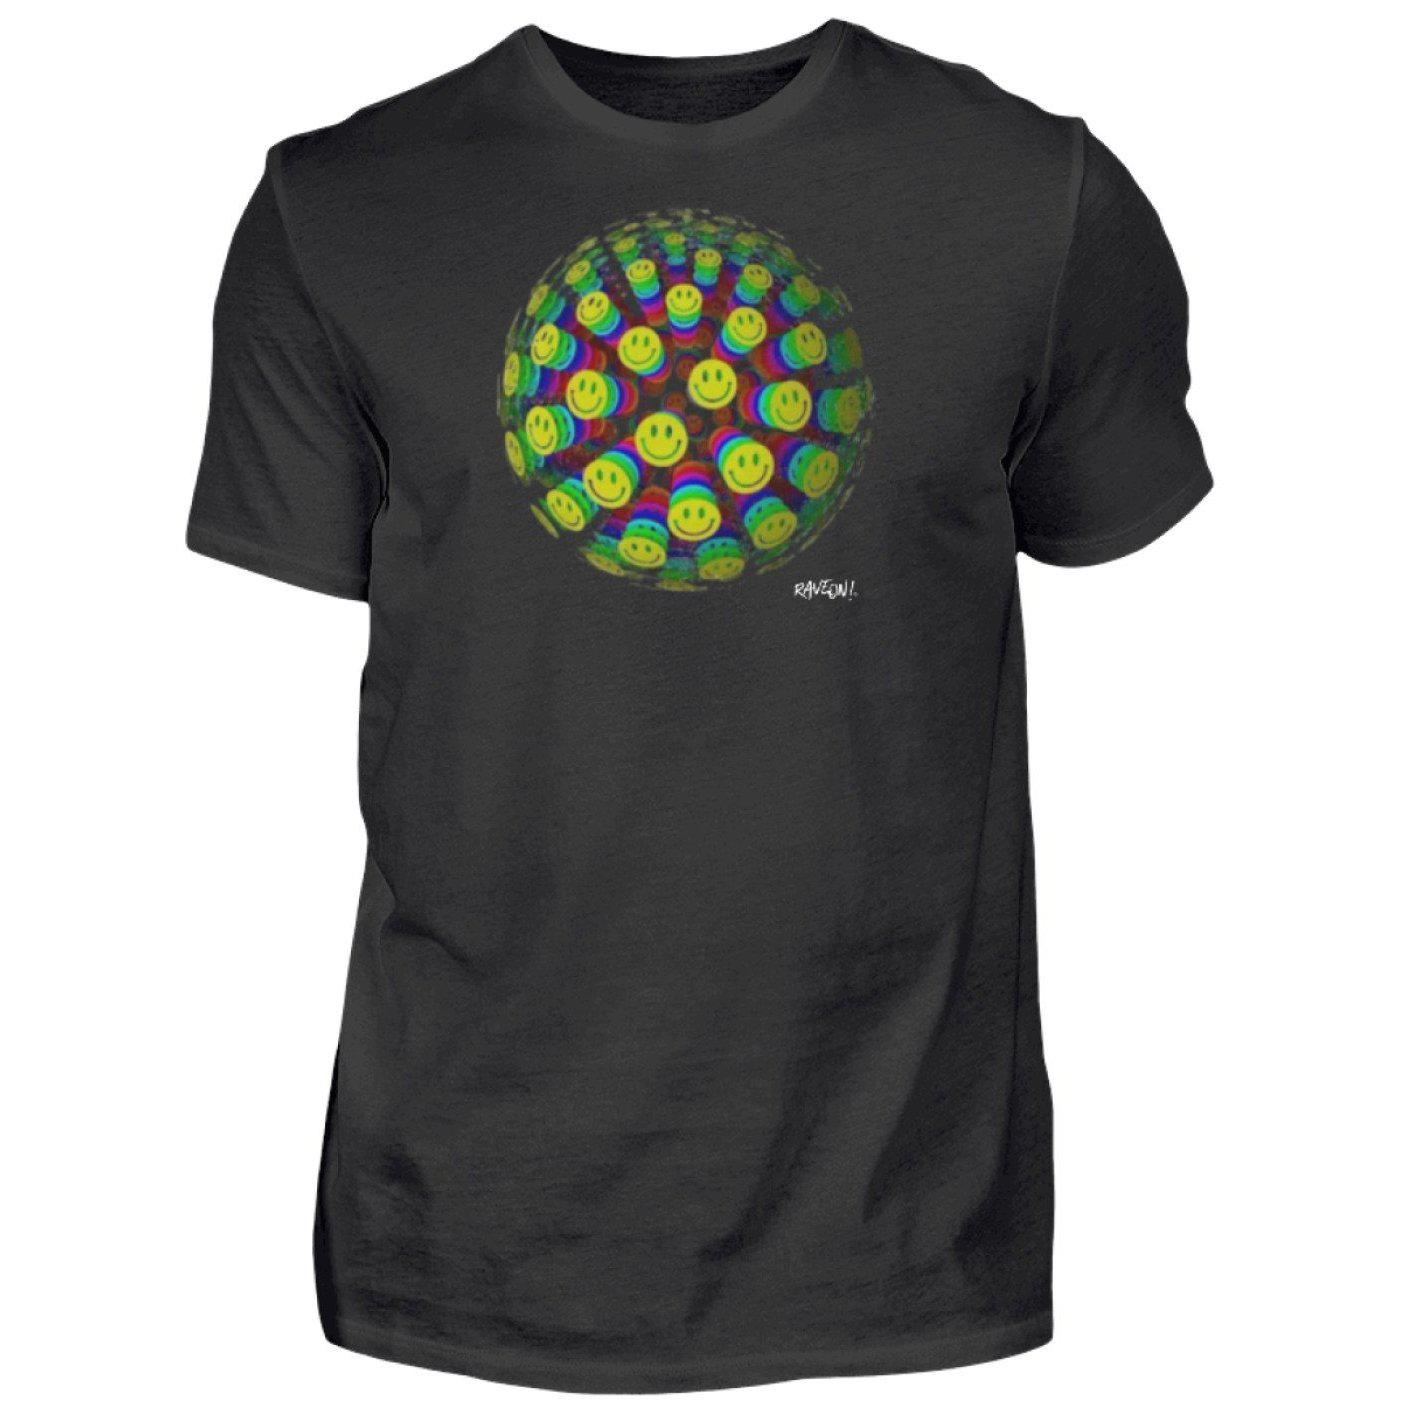 Smilie Wereld - Rave On!® - Shirt Heren Basic T-Shirt Zwart / S - Rave On!® the club & techno scene shop voor coole jonge fashion streetwear style & fashion outfits + sexy festival 420 spullen